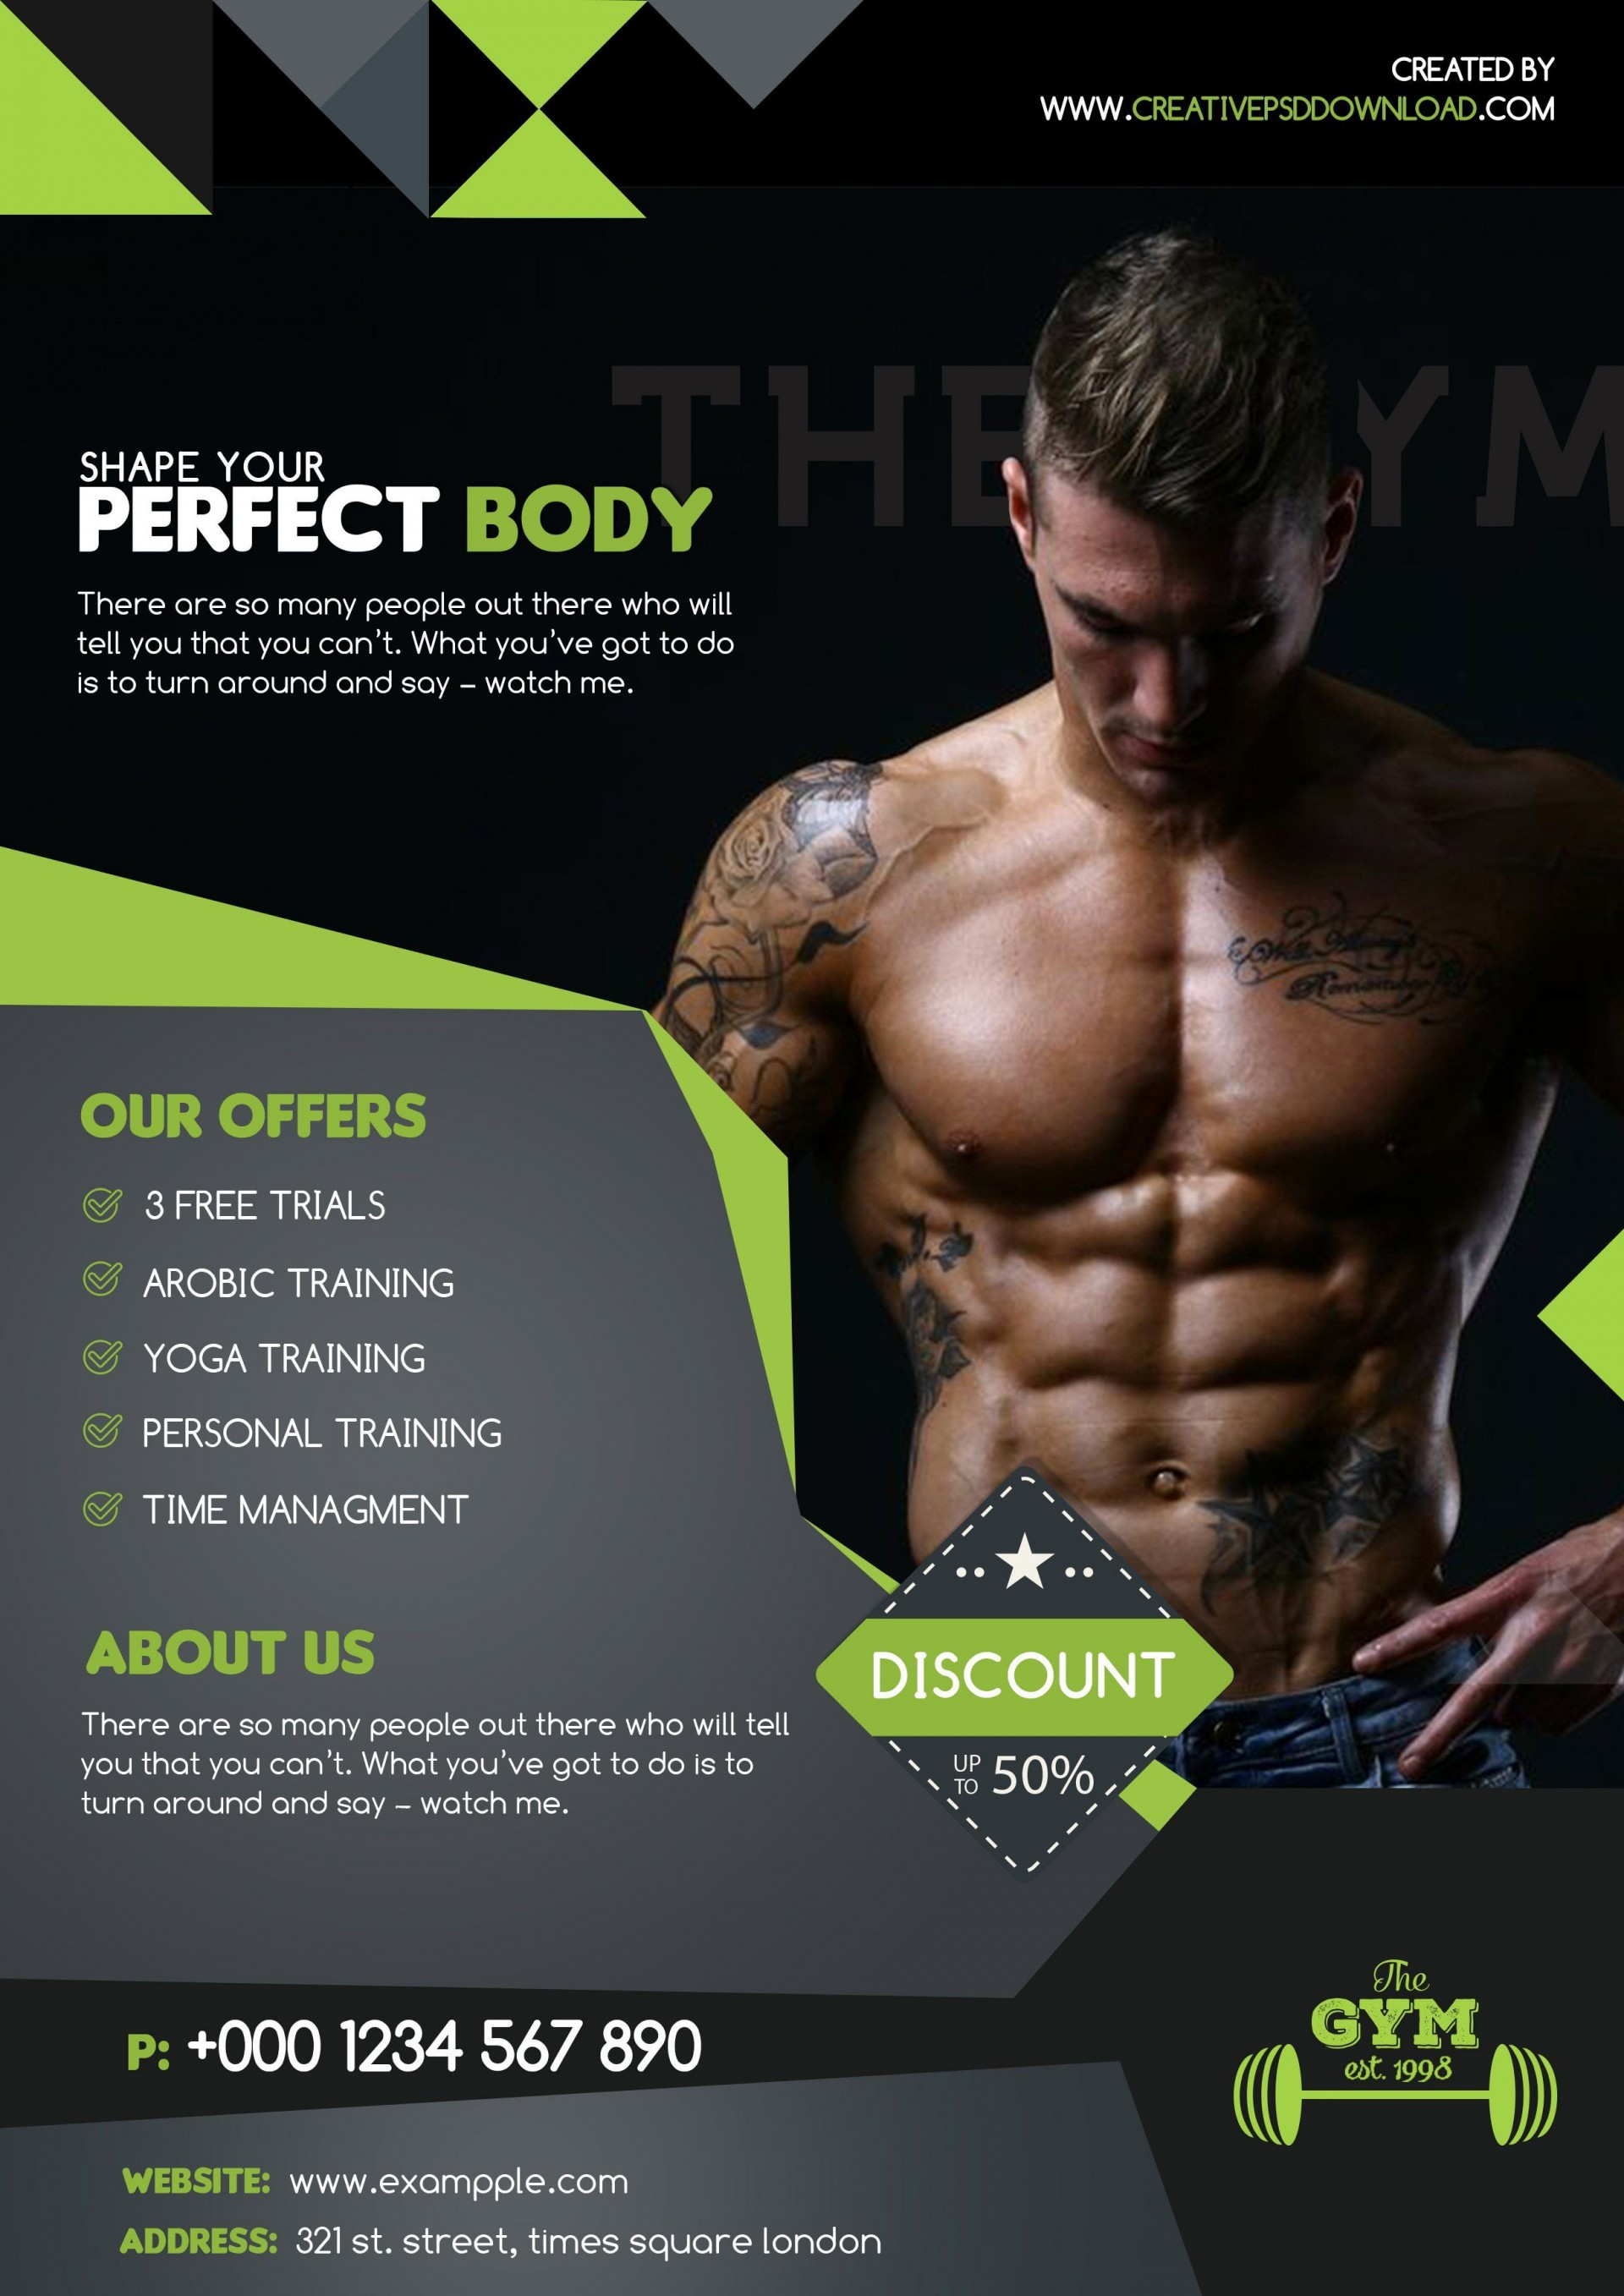 009 Outstanding Personal Trainer Flyer Template Inspiration  Word Psd1920